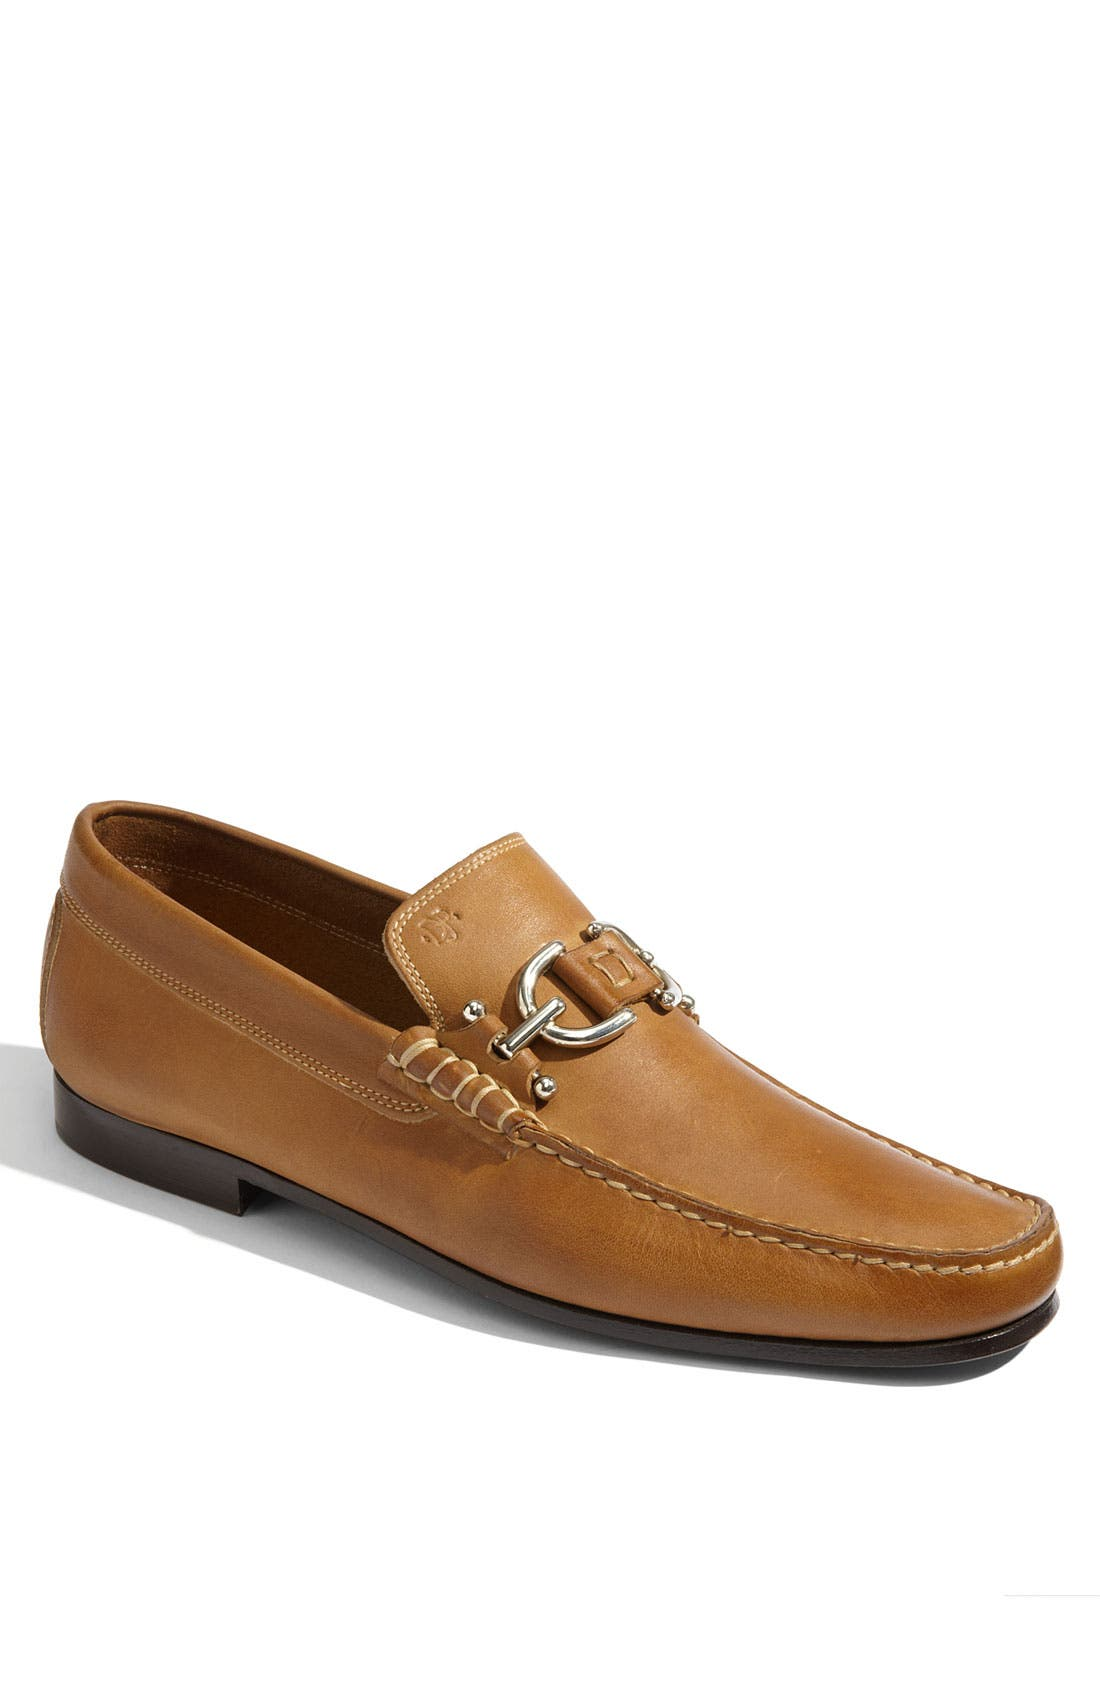 Alternate Image 1 Selected - Donald J Pliner 'Dacio' Loafer